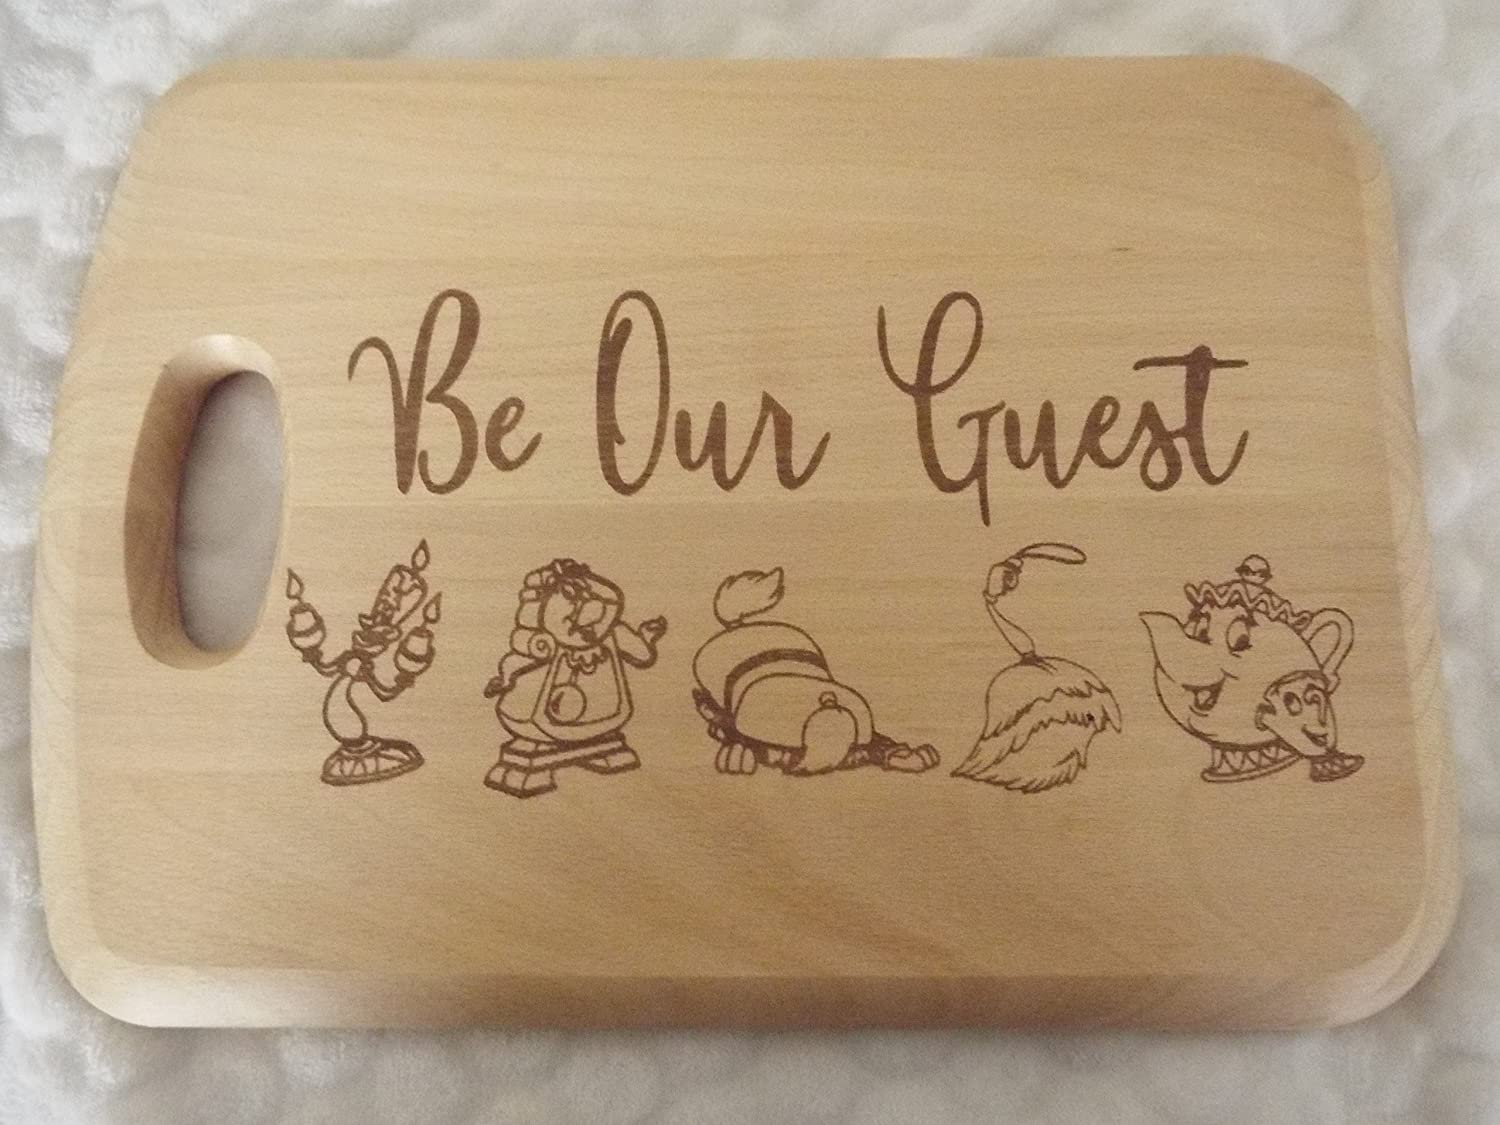 Be our guest wooden chopping/cutting/cheese board beauty and the beast gift LBS4ALL